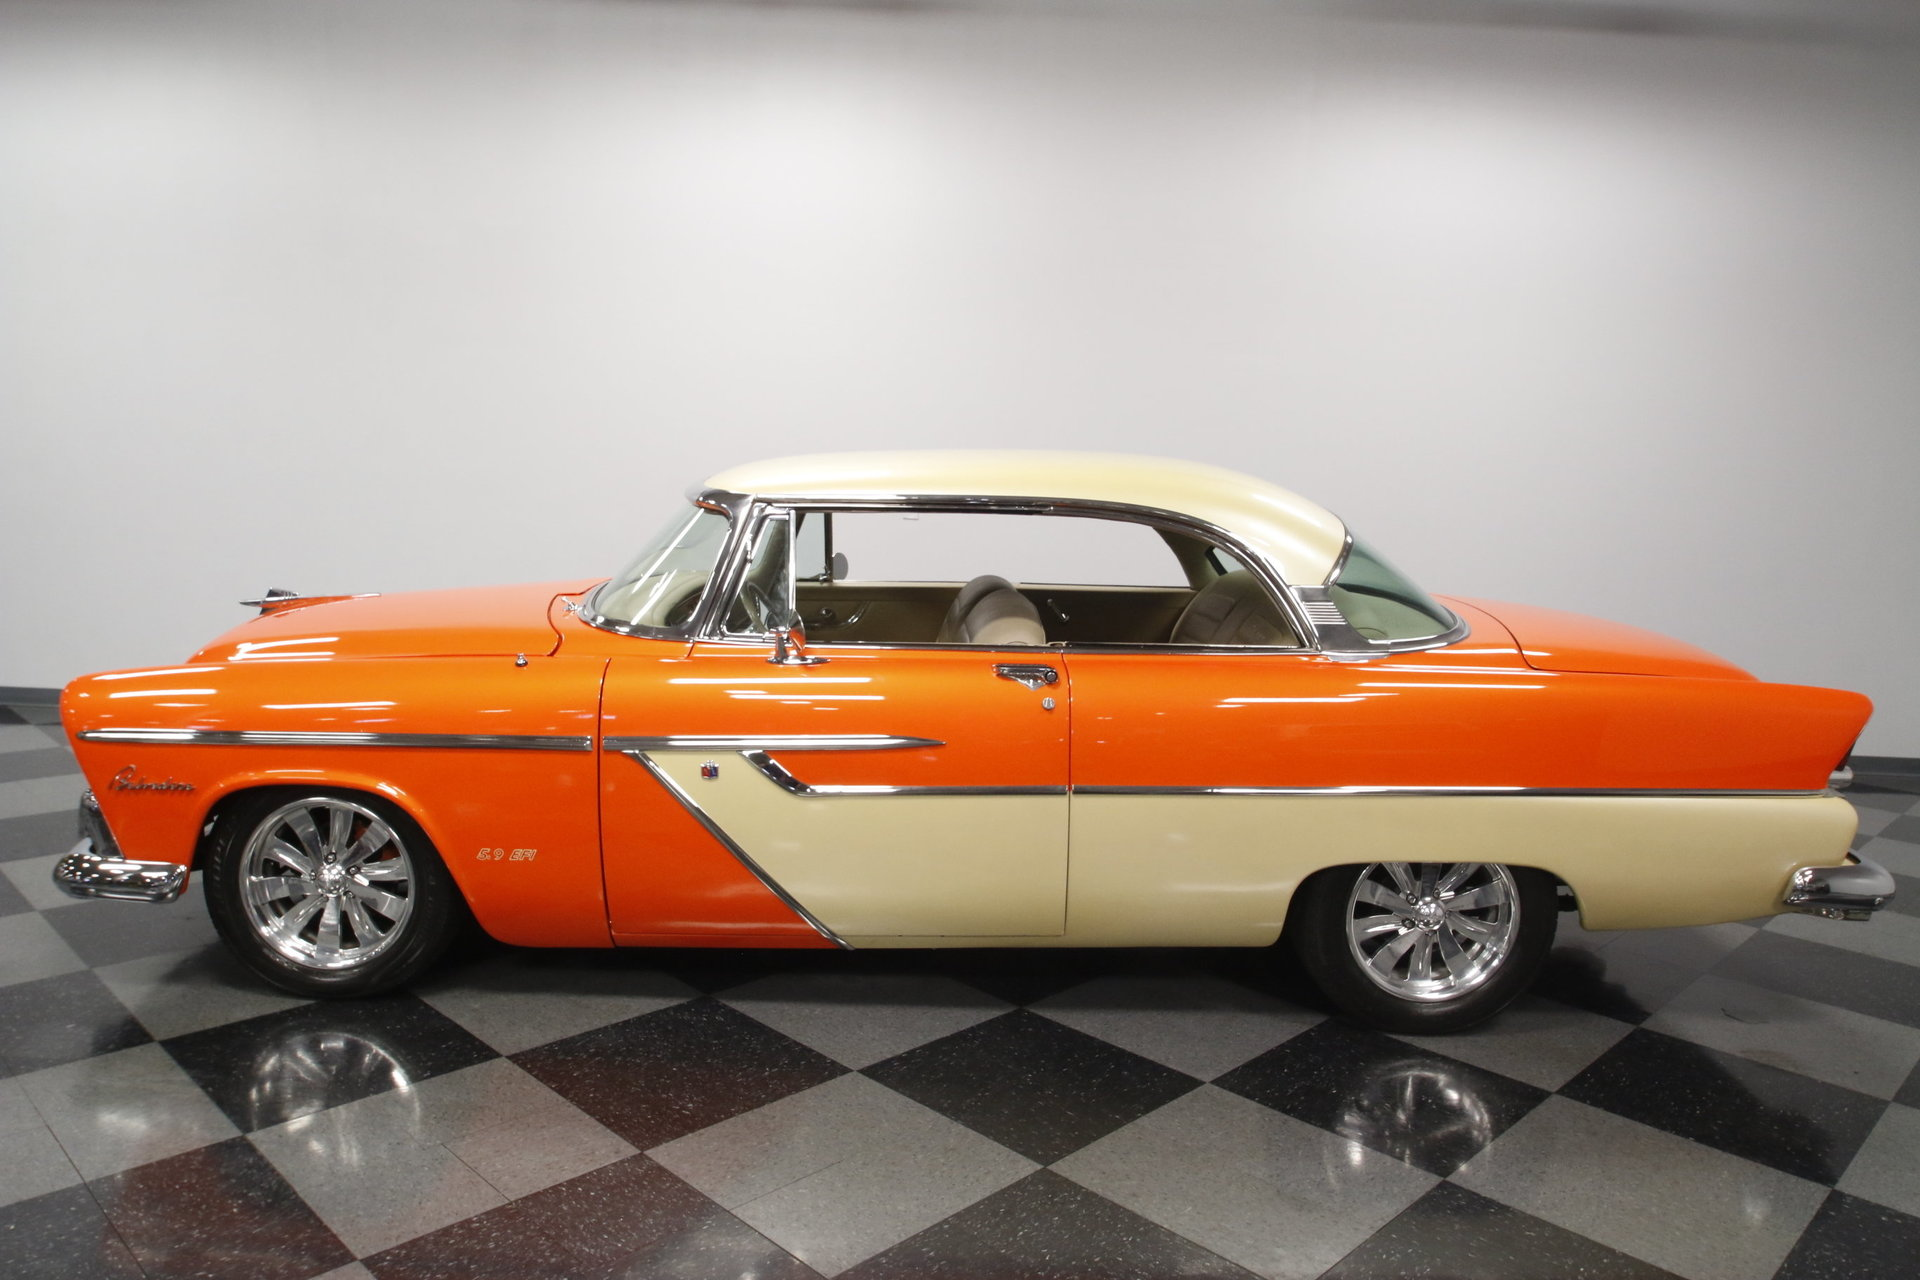 1955 Plymouth Belvedere Streetside Classics The Nations Trusted 69 Fury Radiator View 360